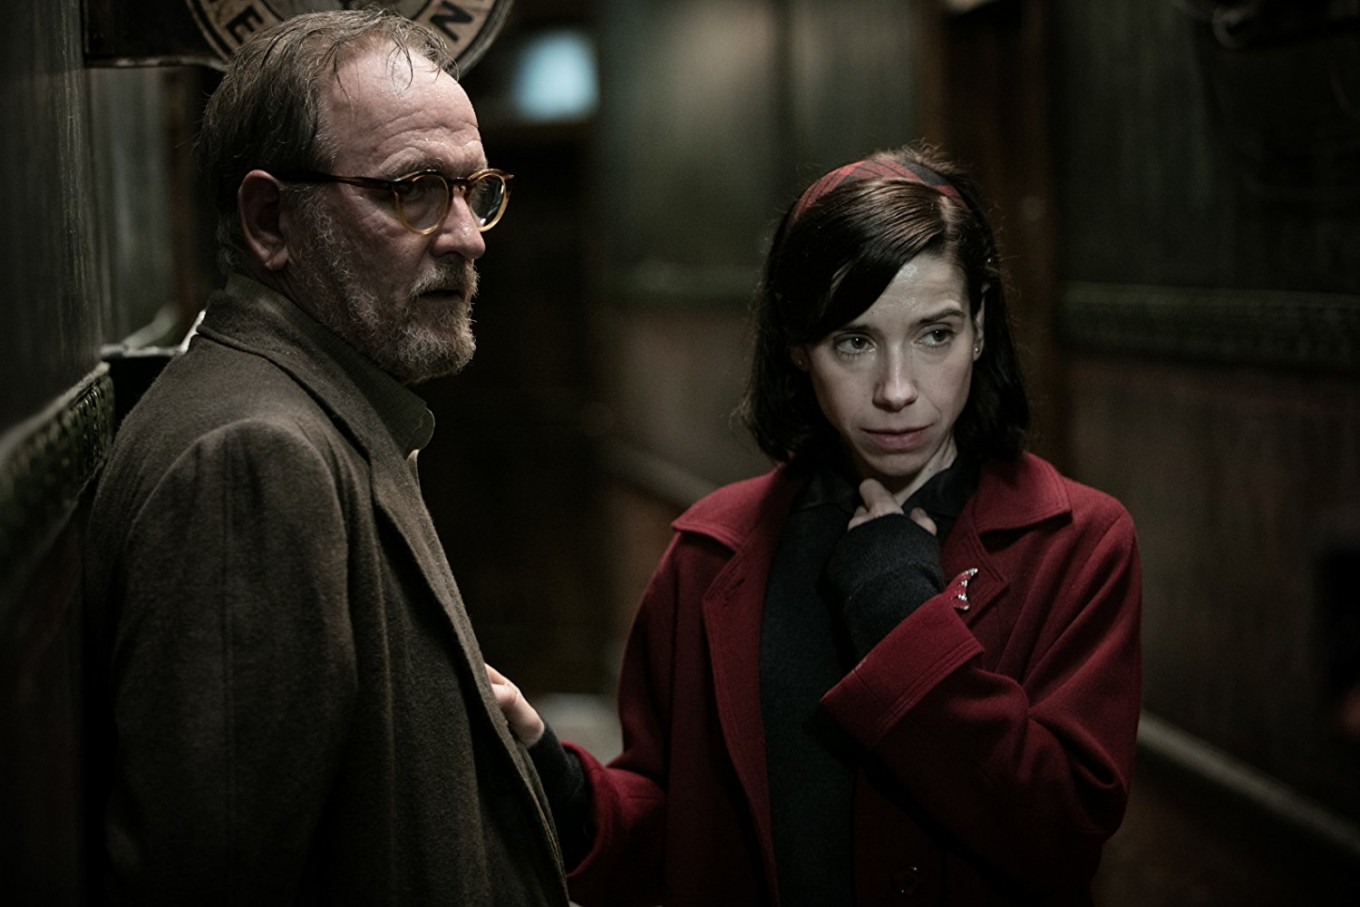 'The Shape of Water' scores big with 13 Oscar nominations